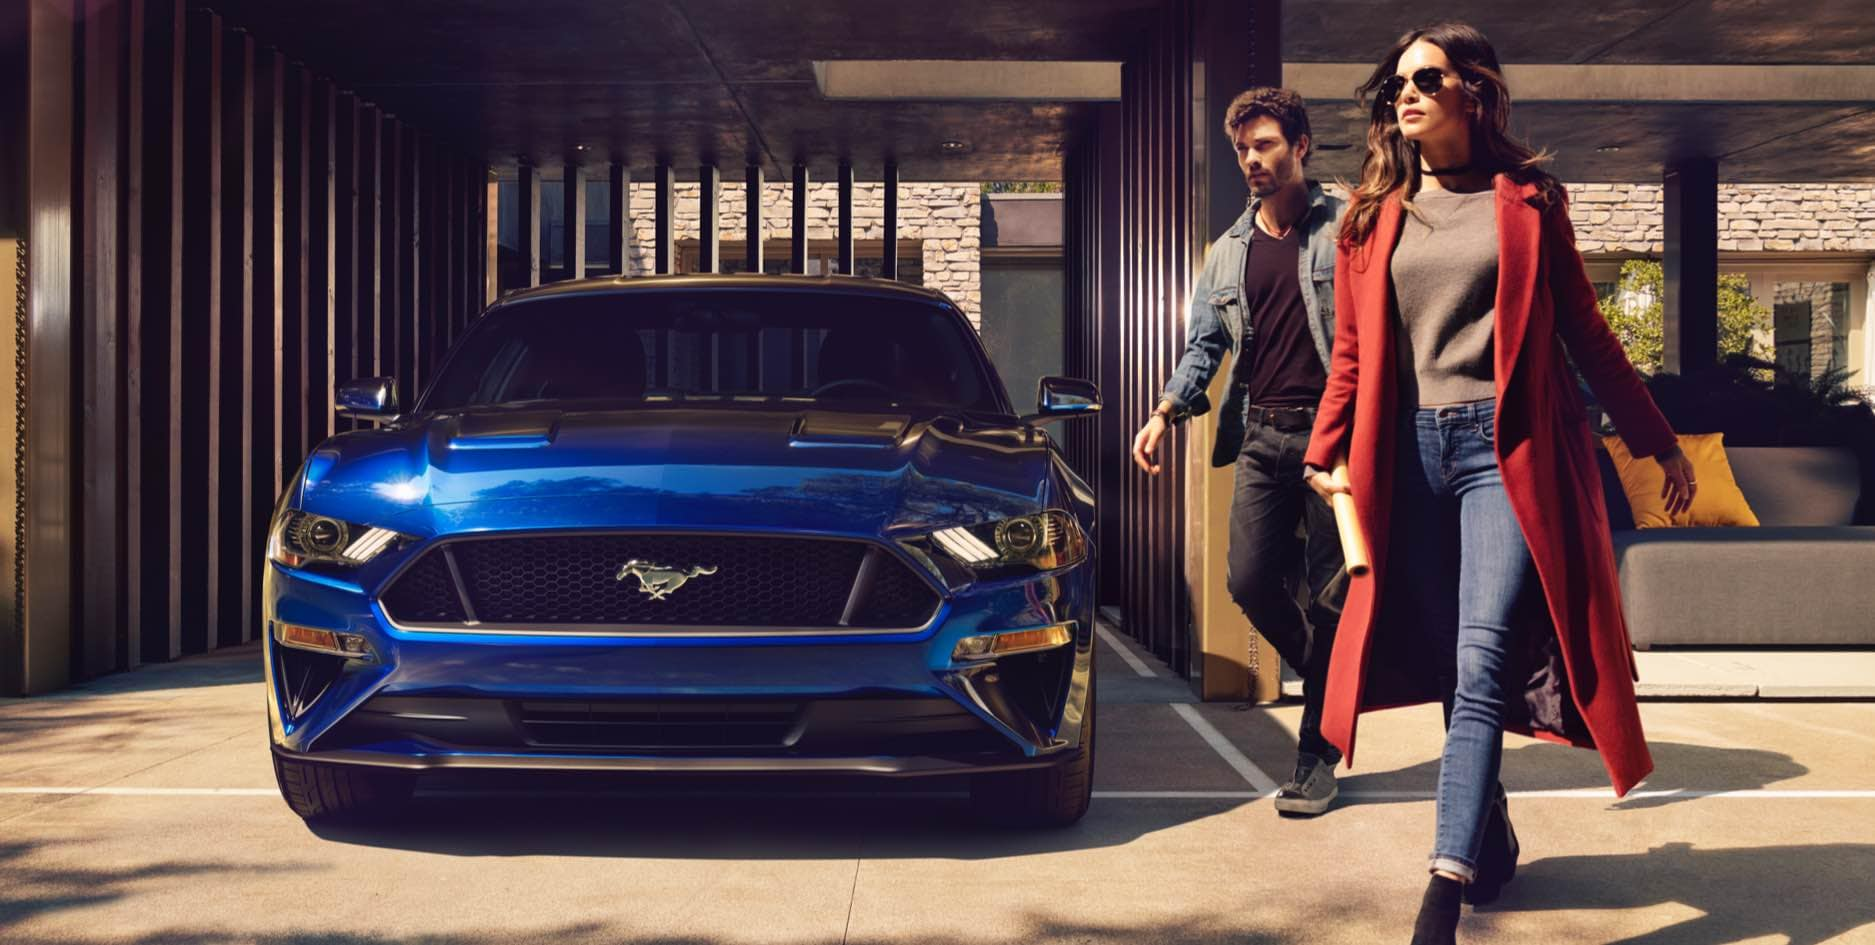 2018 Mustang Gallery 9 Santa Monica Ford Lincoln | New Ford dealership in Santa Monica, CA 90404